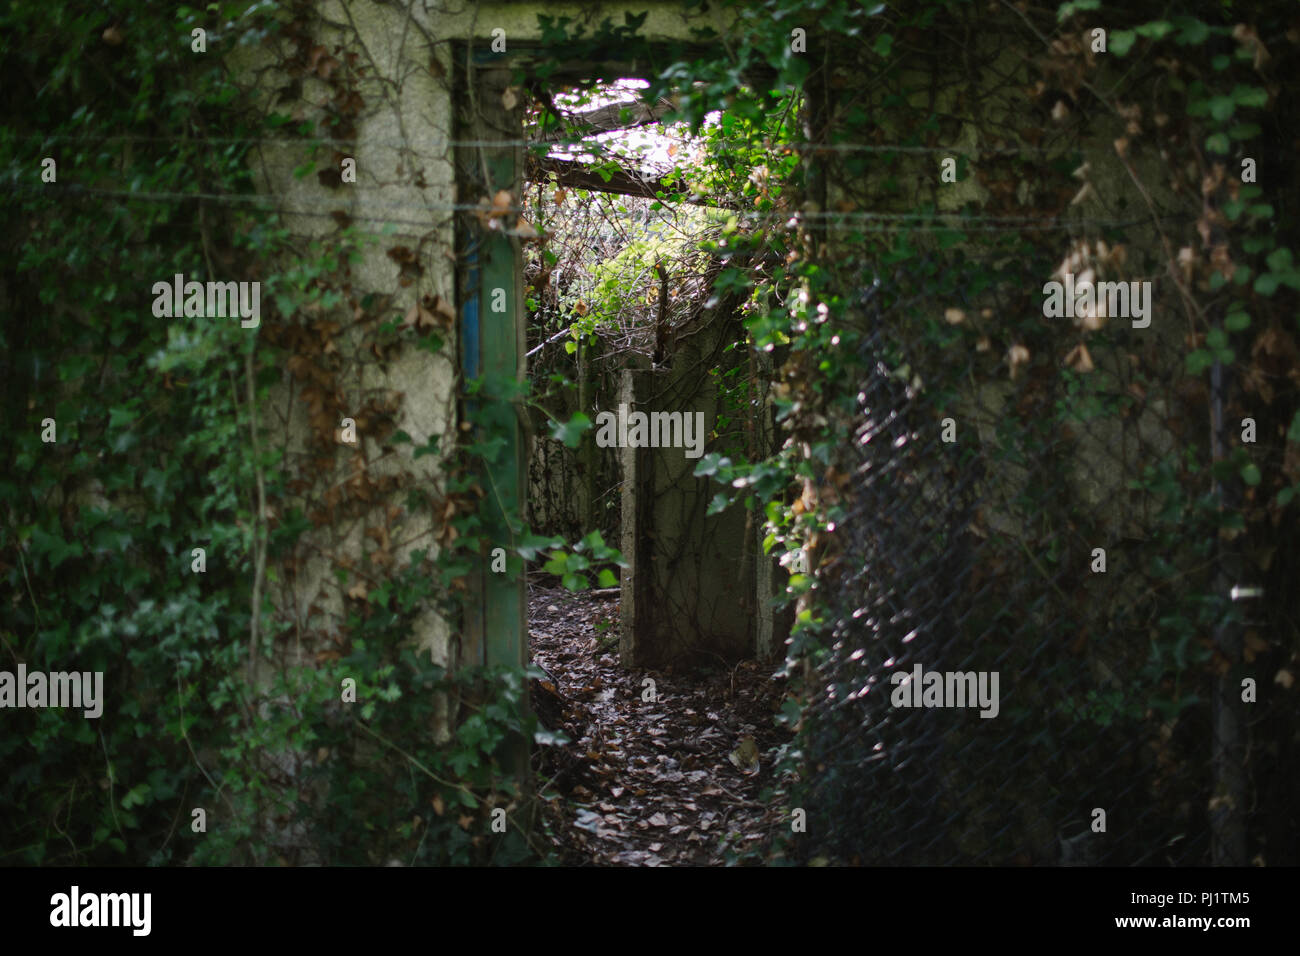 Derelict building that was once part of the terminal of the Aust Ferry at Old Passage which crossed the Severn before the Severn Bridge was built - Stock Image